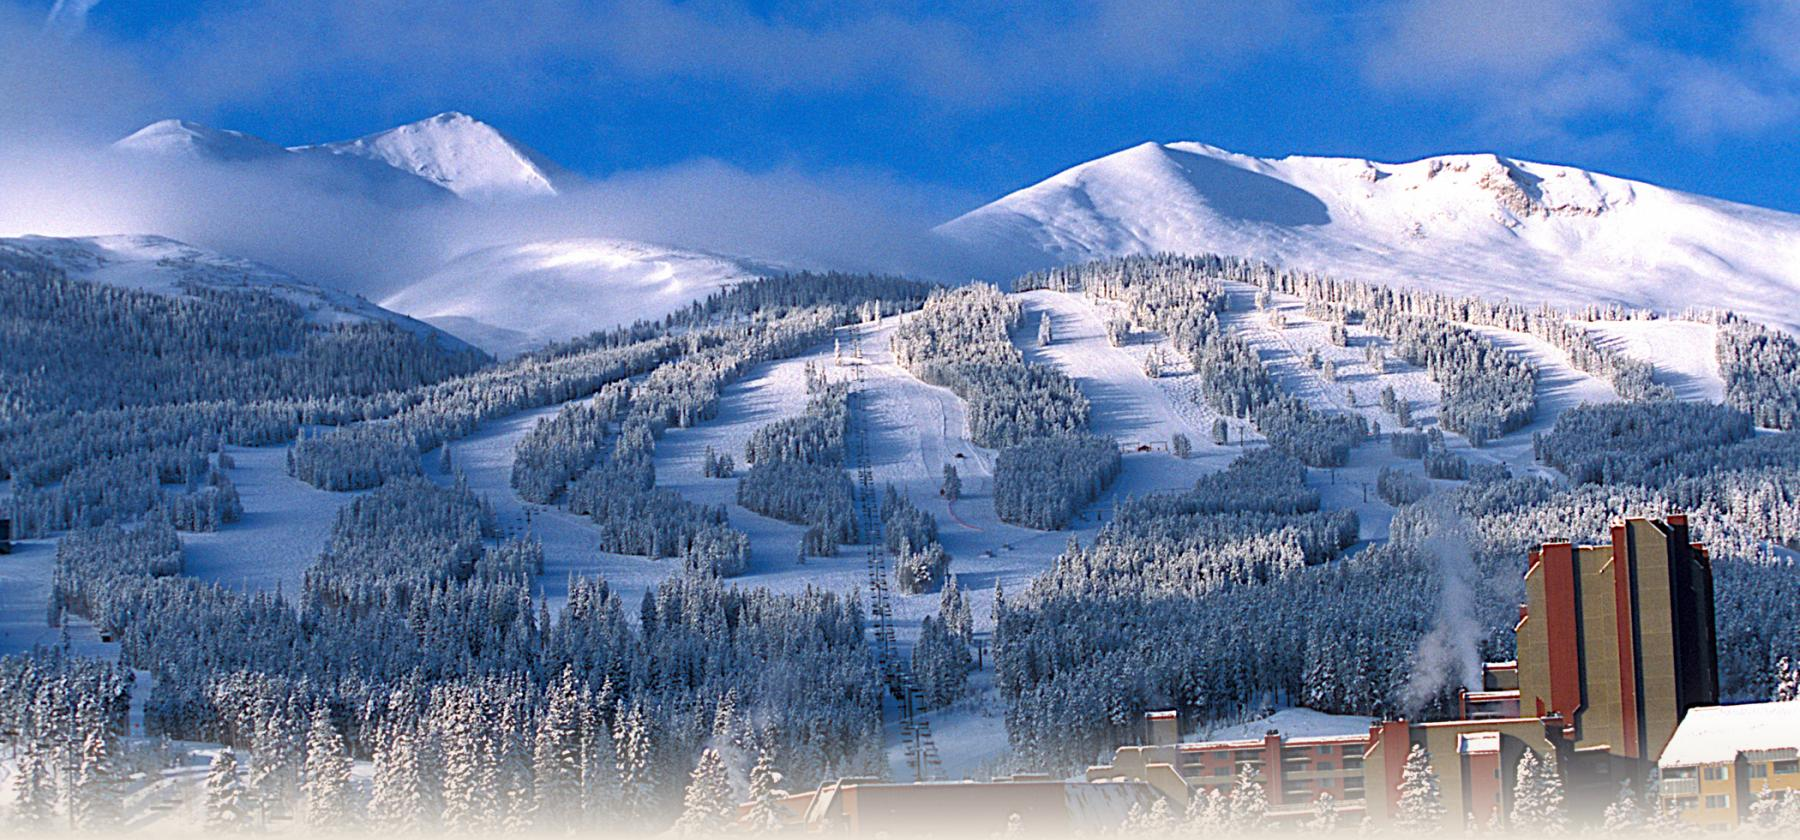 from Roland gay ski resort co